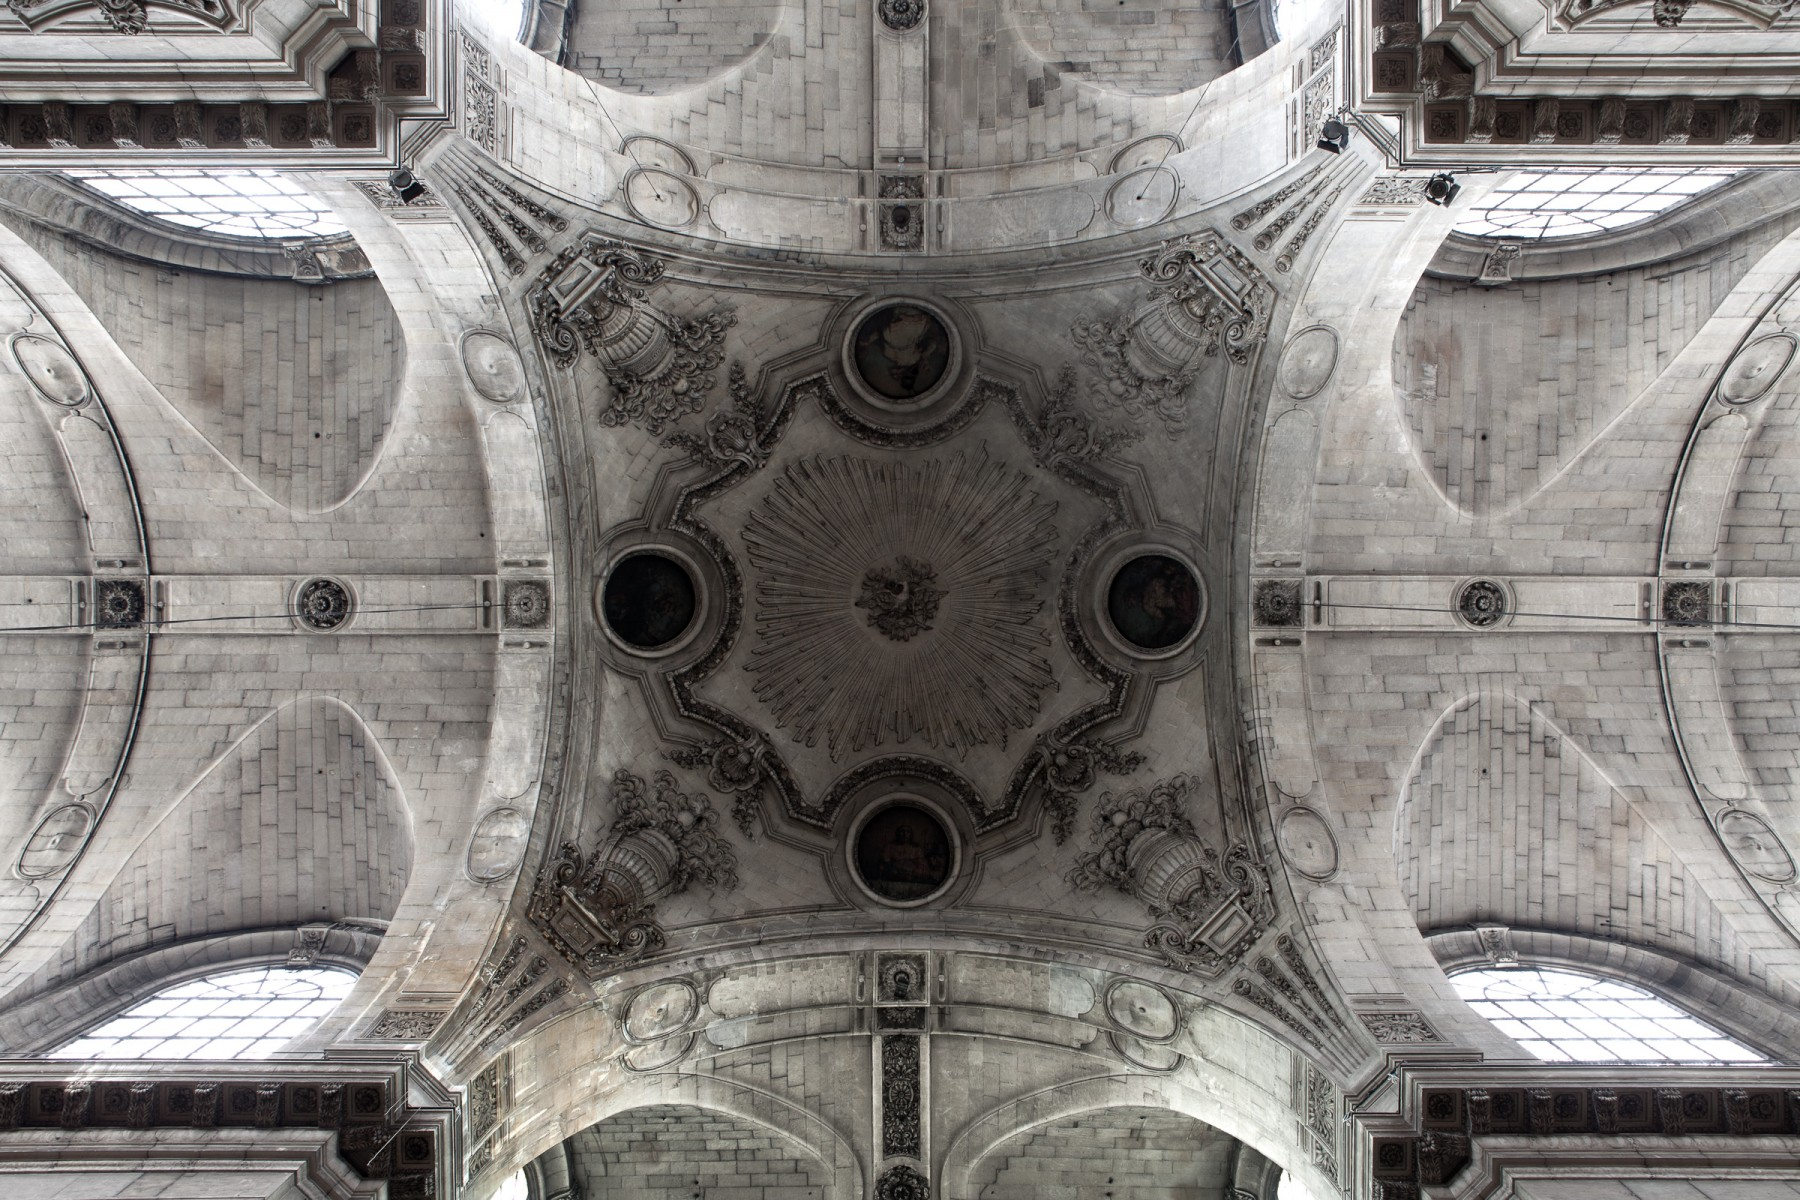 Ceiling of Saint-Sulpice